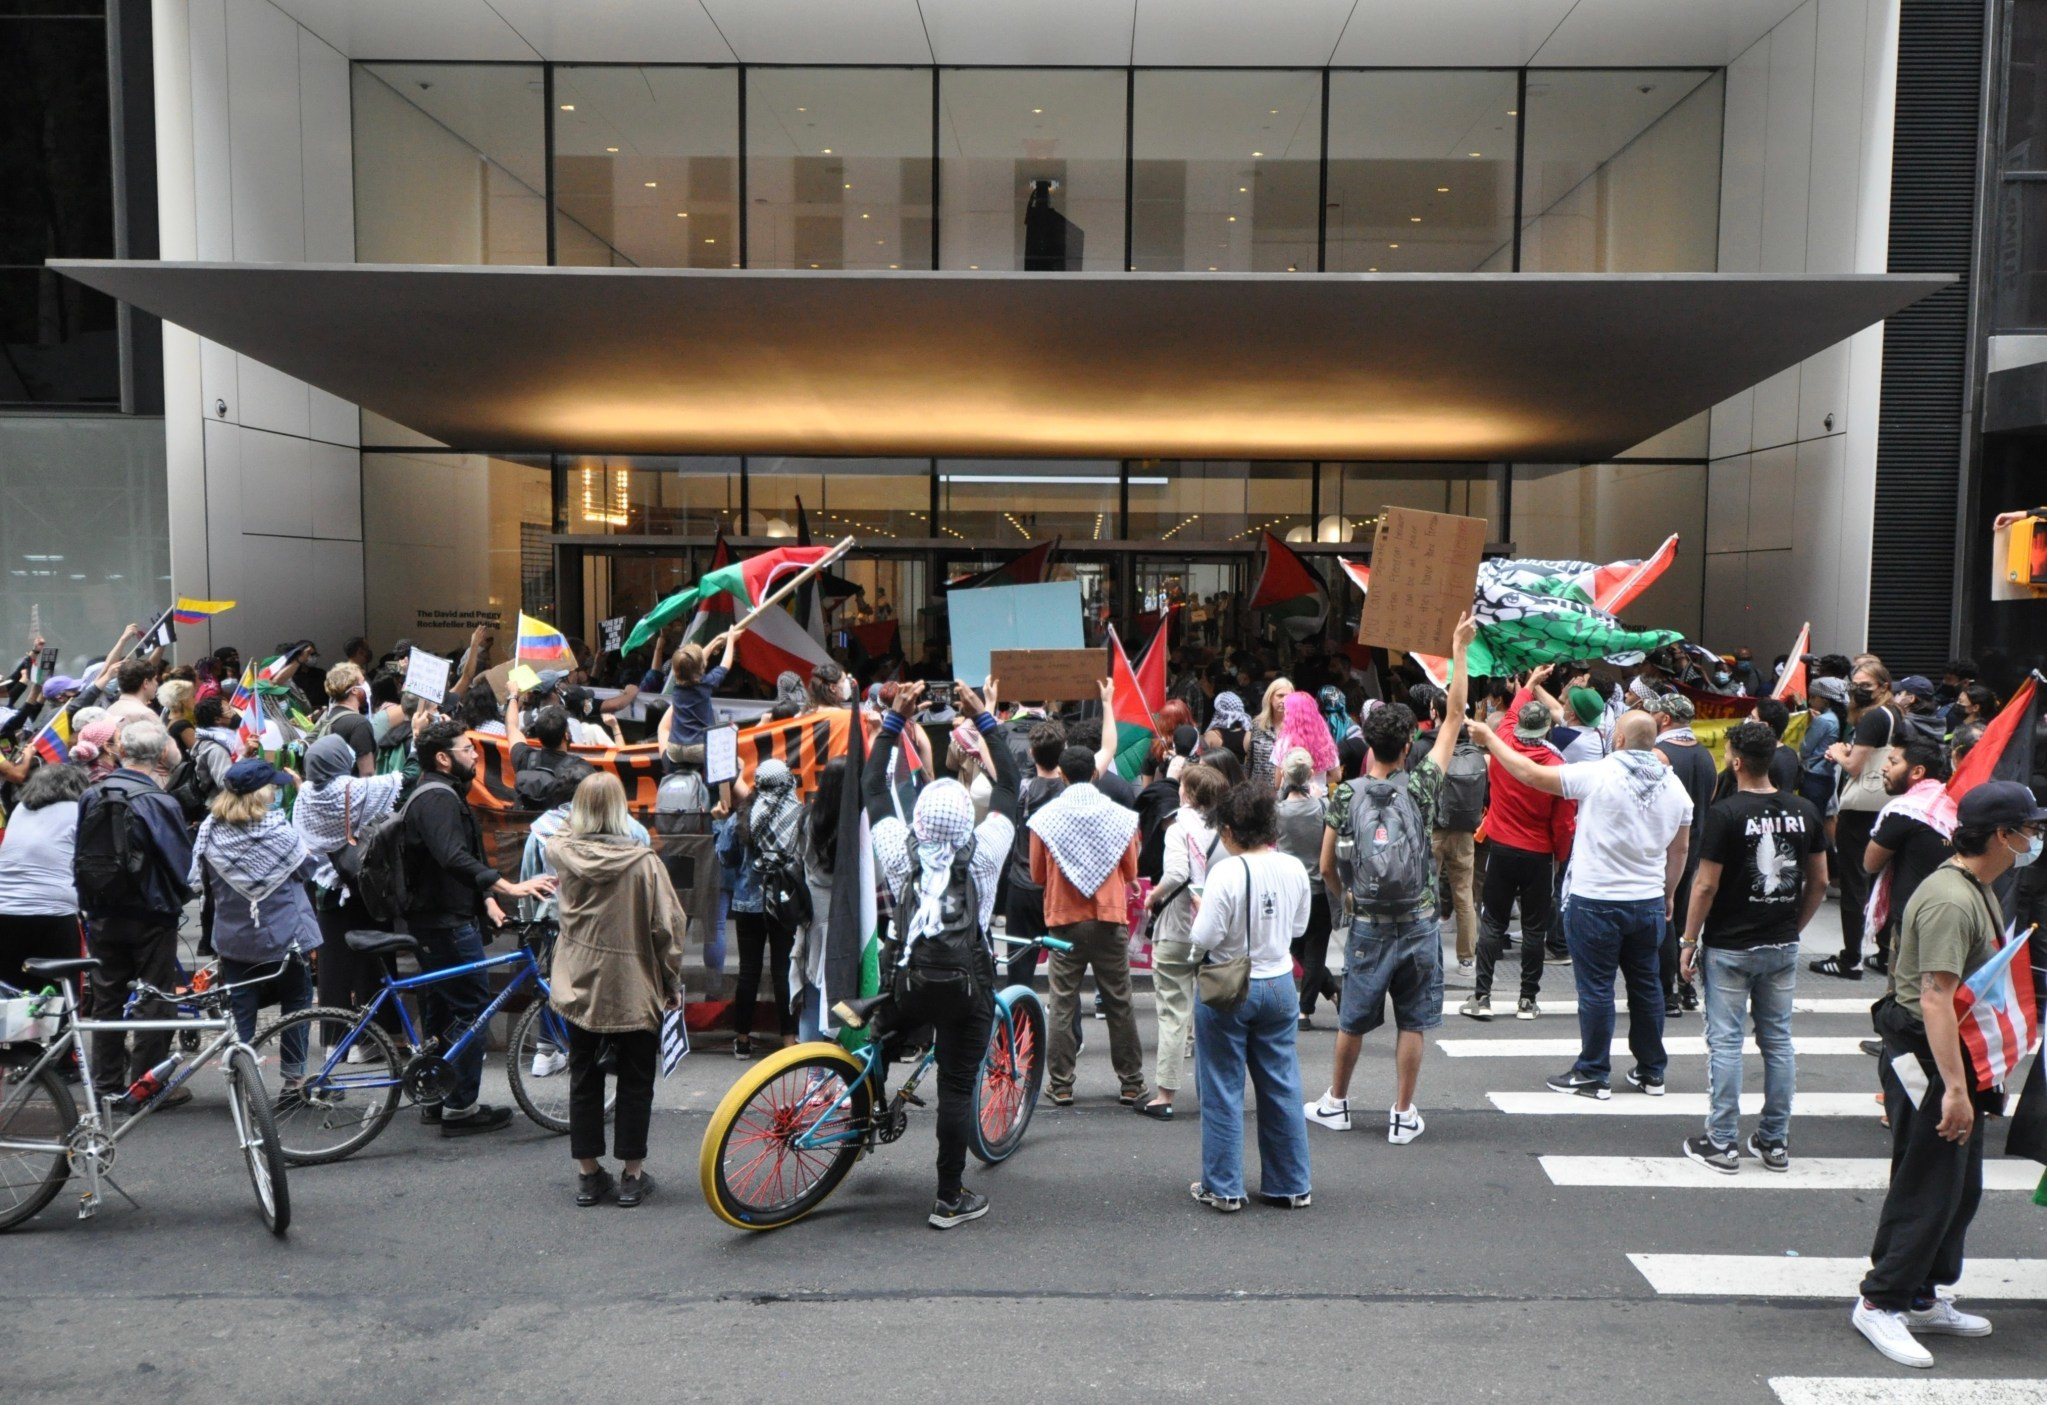 """""""Strike MoMA"""" protesters crowded around the museum entrance and waved flags."""